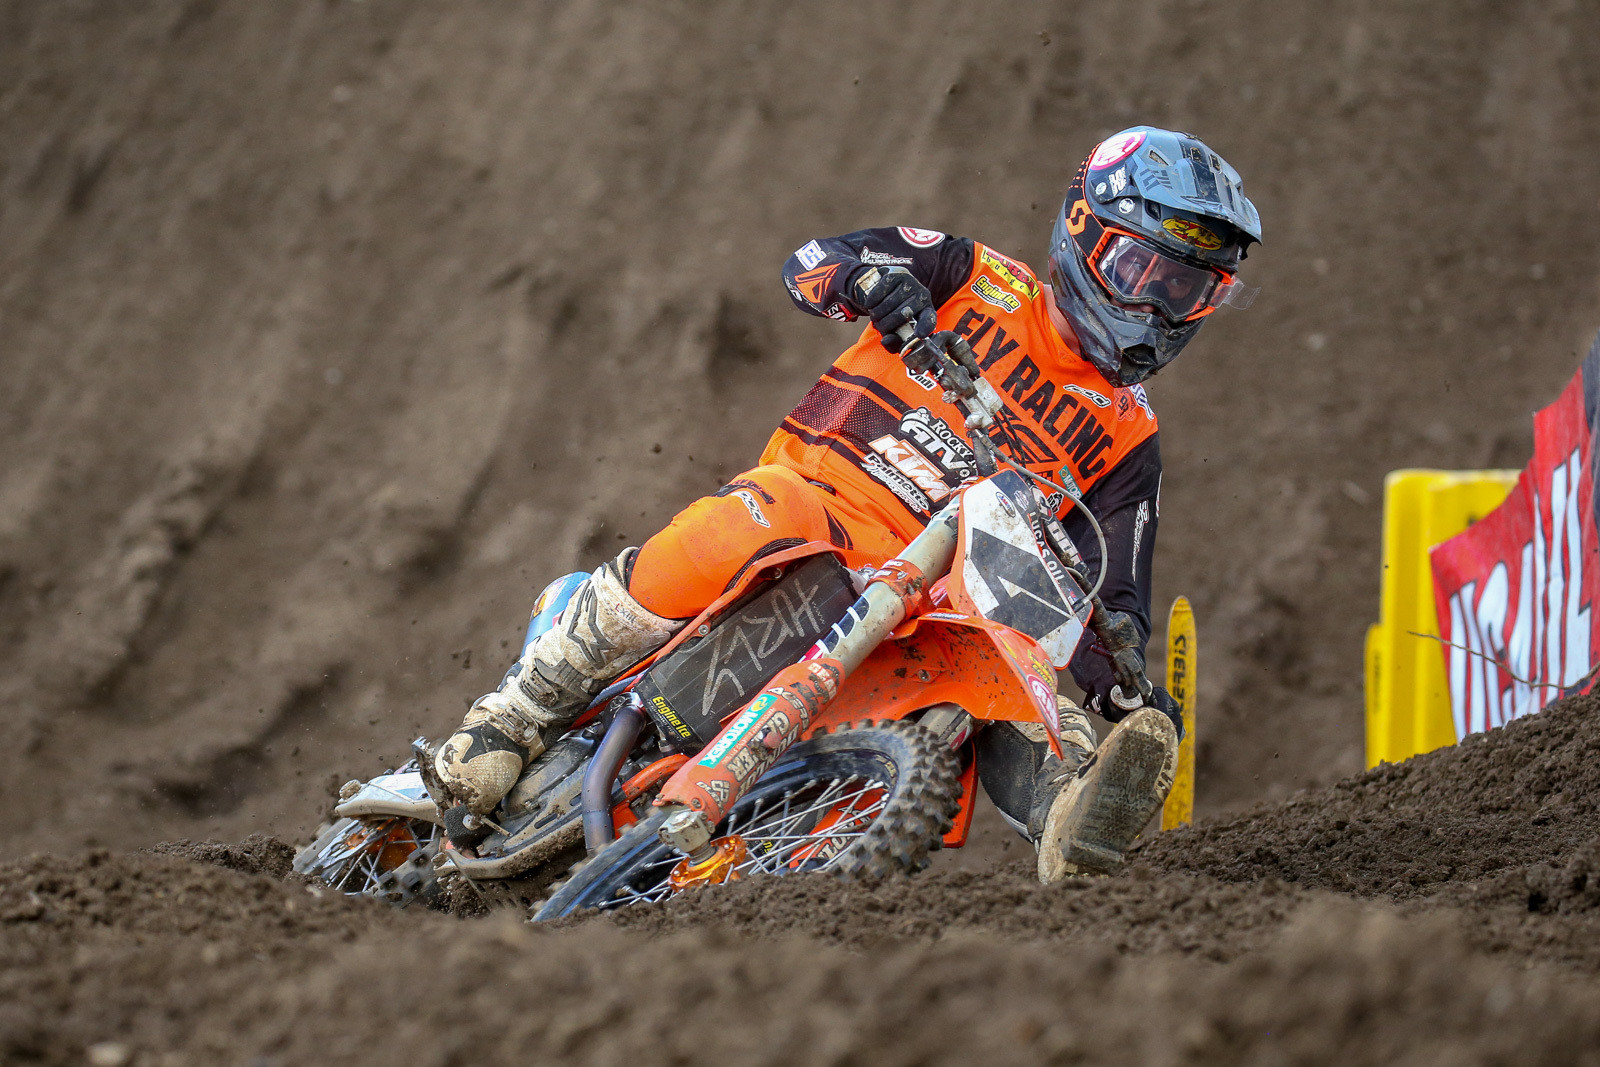 Blake Baggett was fifth this week after starting around the top ten in both motos.